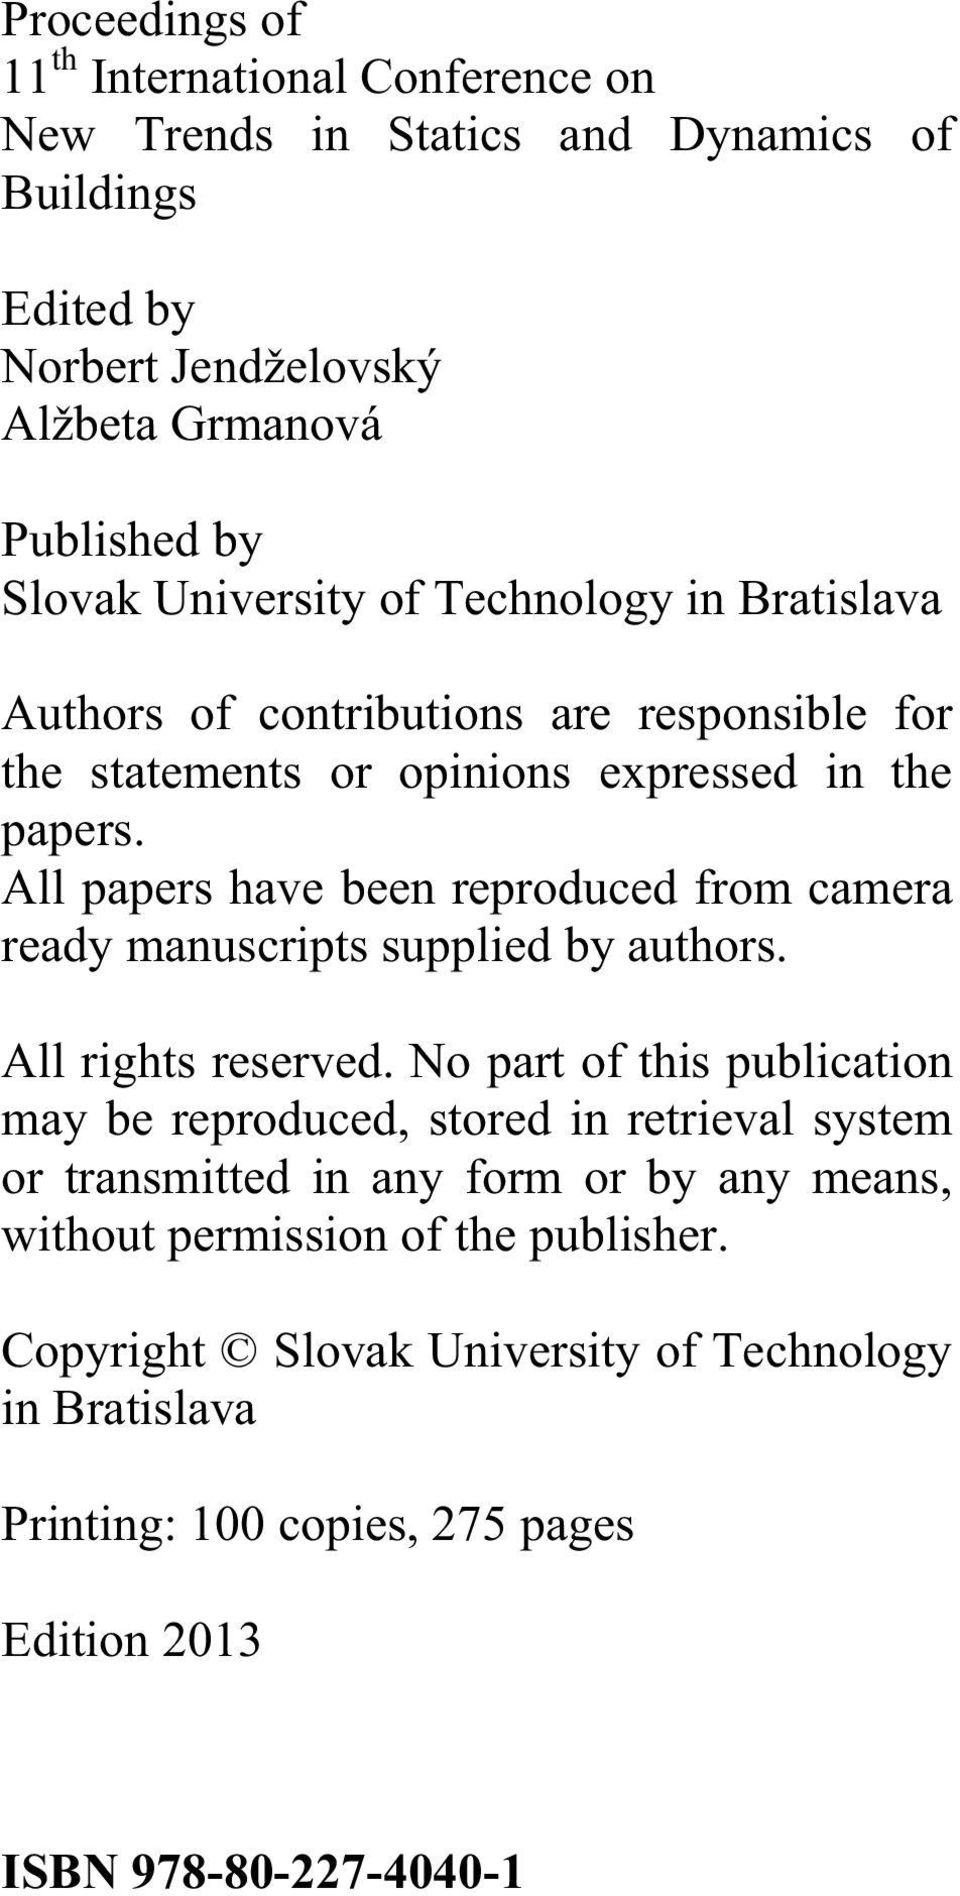 All papers have been reproduced from camera ready manuscripts supplied by authors. All rights reserved.